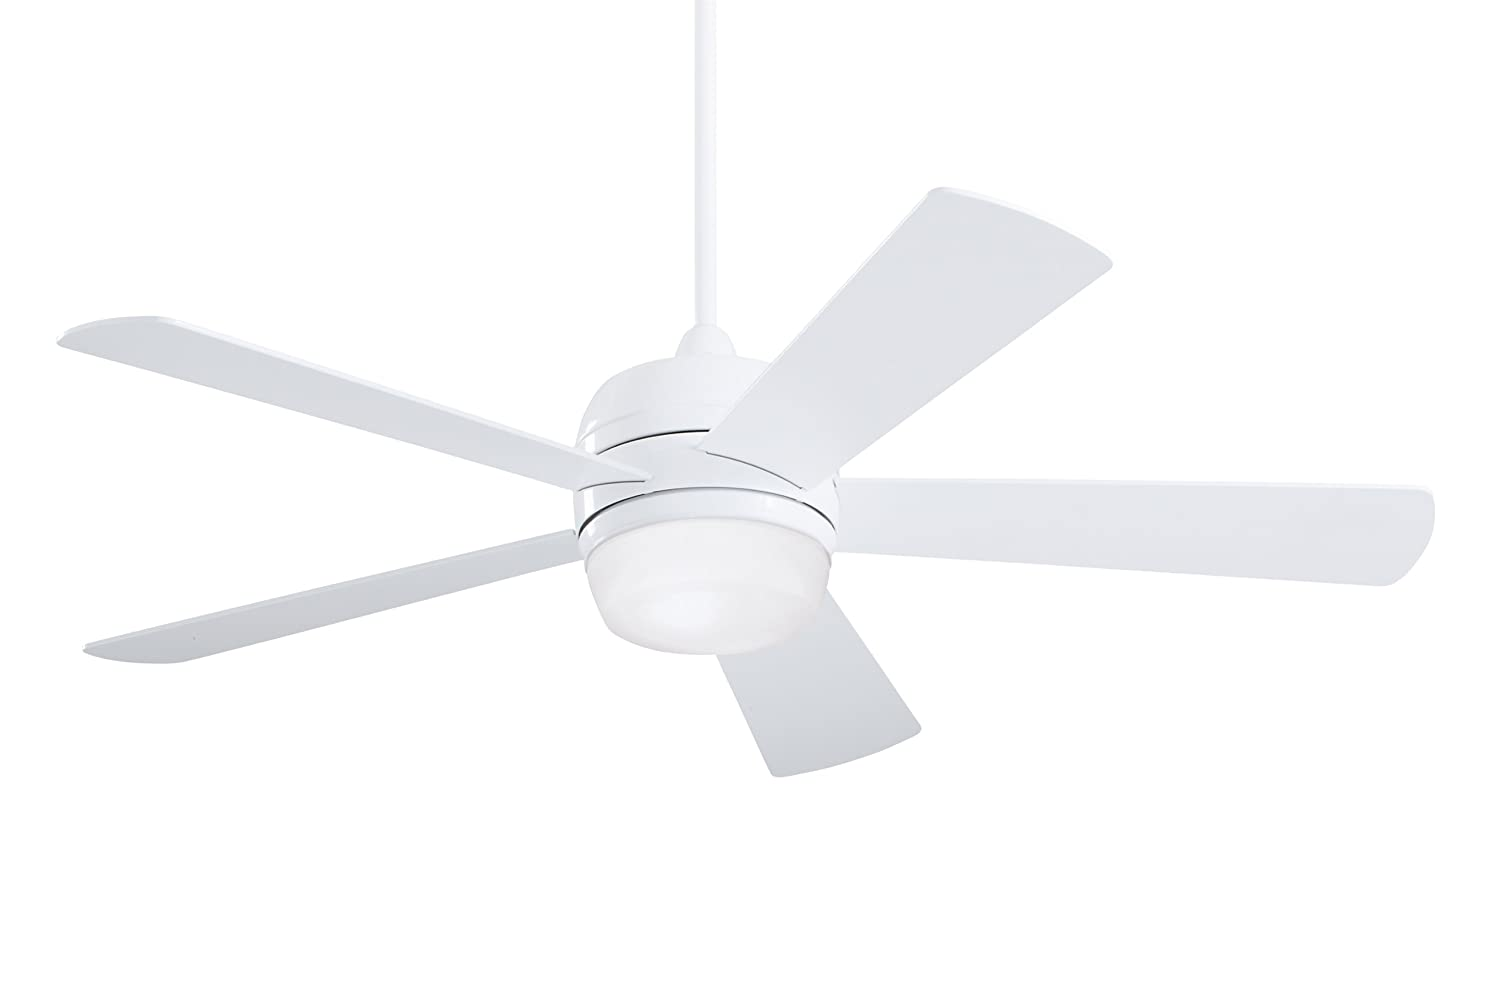 Emerson Ceiling Fans CF930WW Atomical 52-Inch Modern Indoor Outdoor Ceiling Fan With Light And Remote, Damp Rated, Appliance White Finish